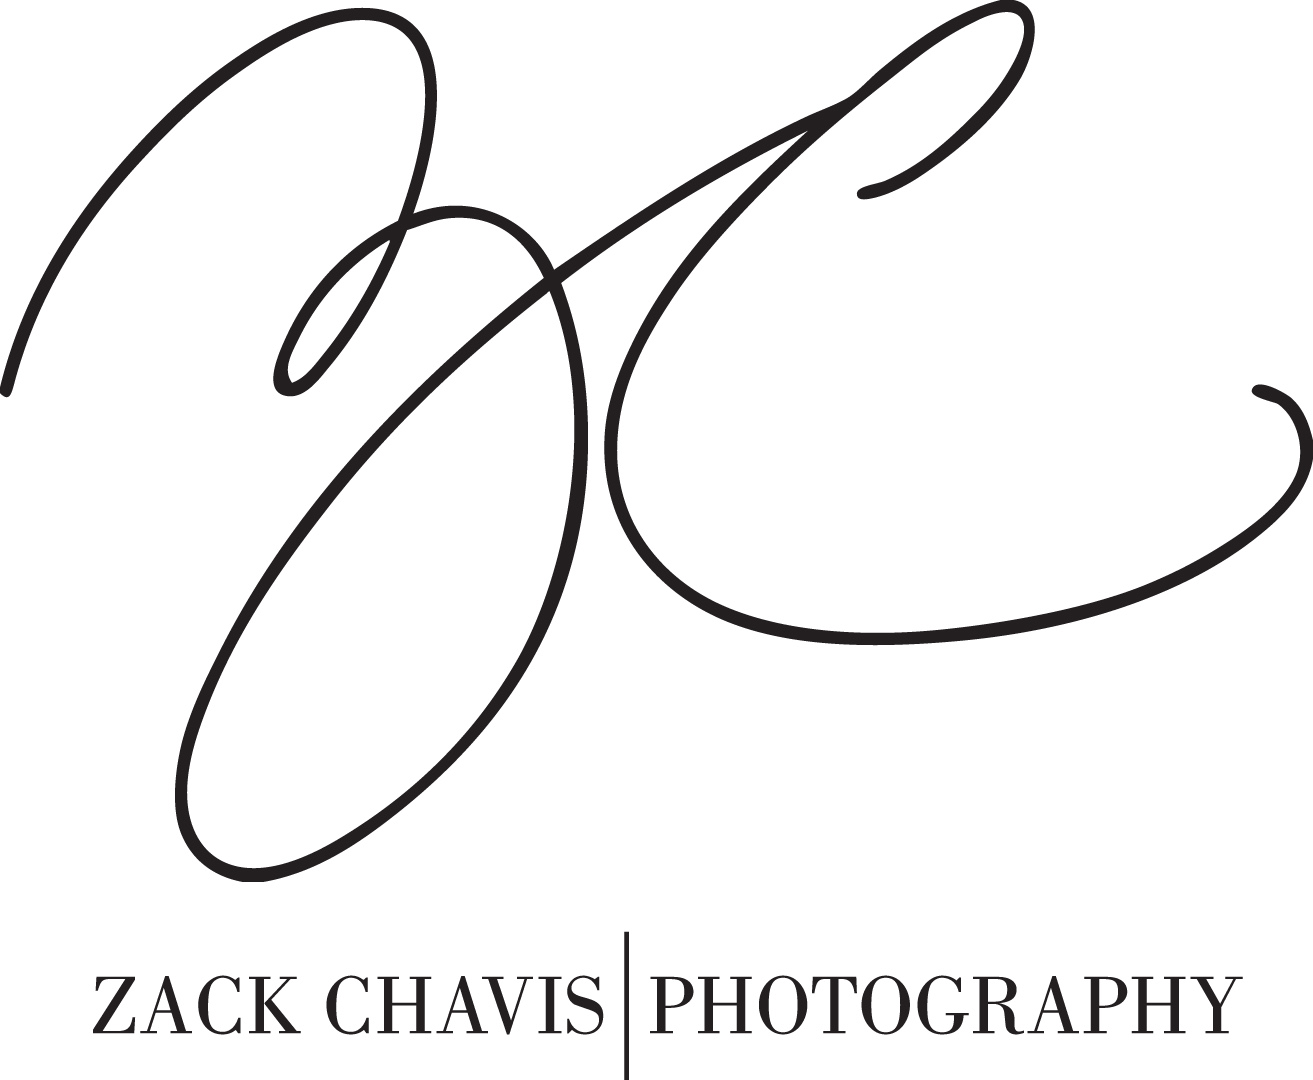 Zack Chavis Photography